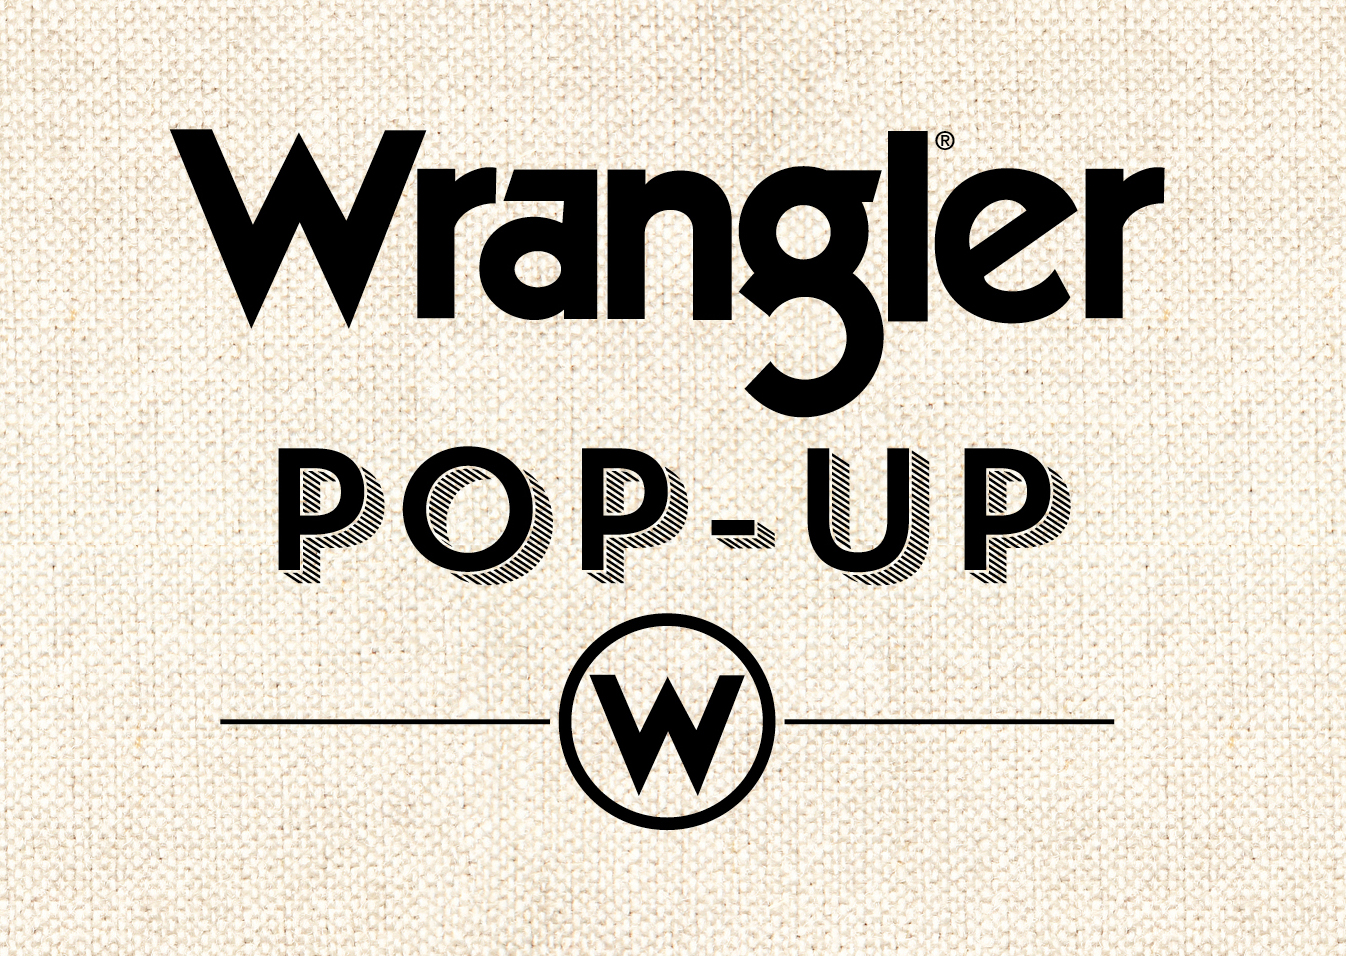 We'll be playing down at the Wrangler Pop Up Store in Nashville, TN from 2-4 THIS Sunday!